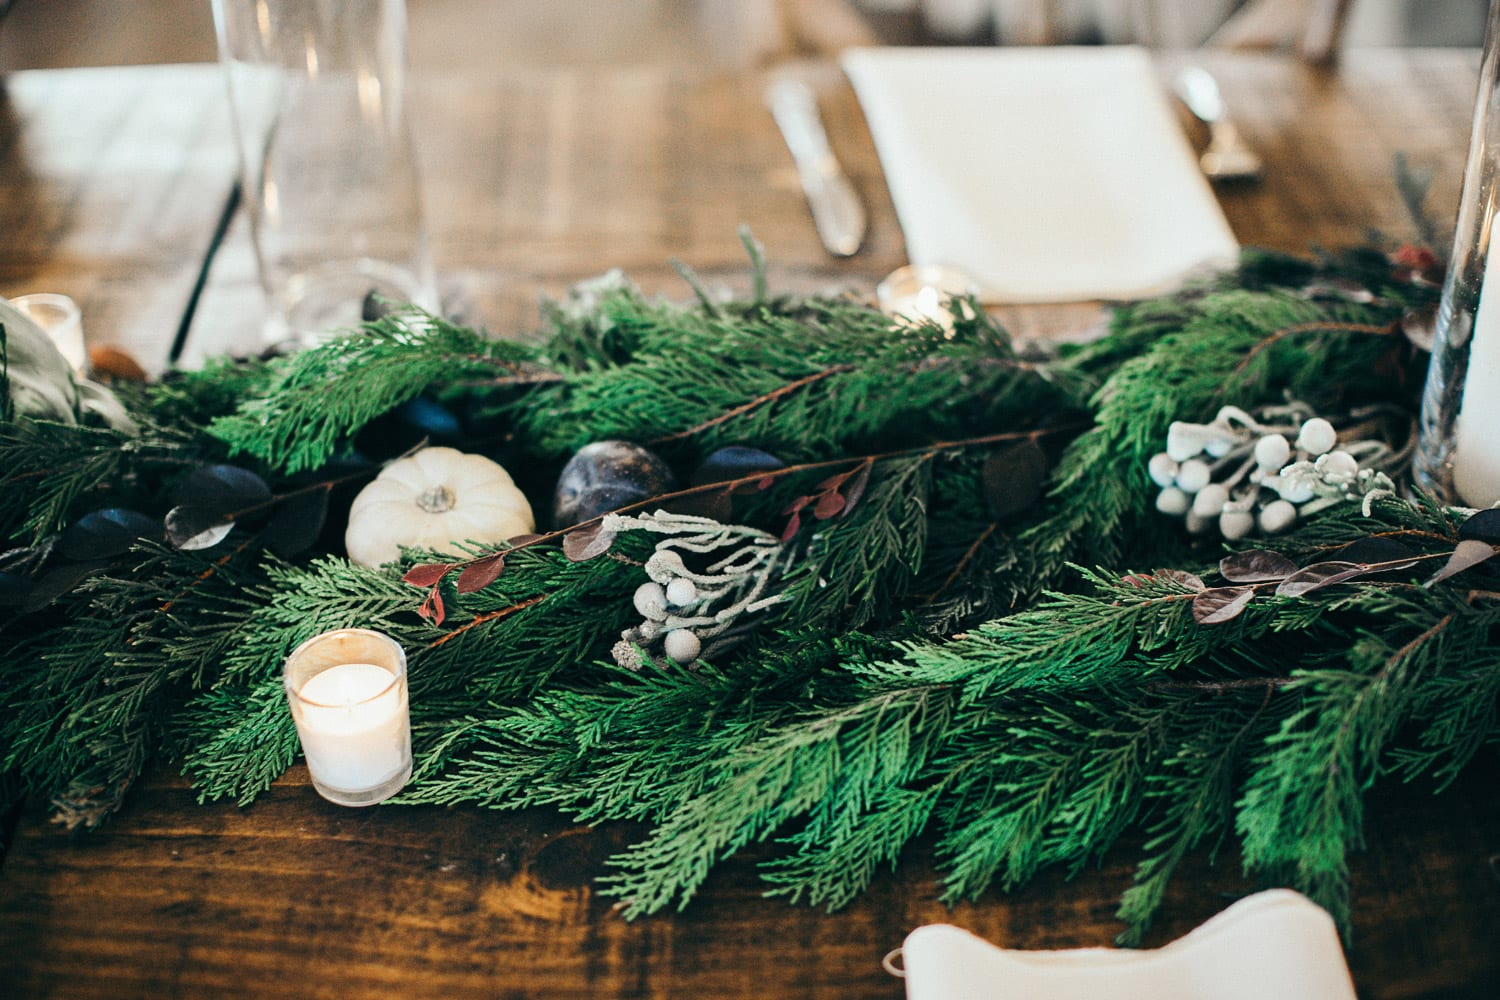 Estate table with greenery